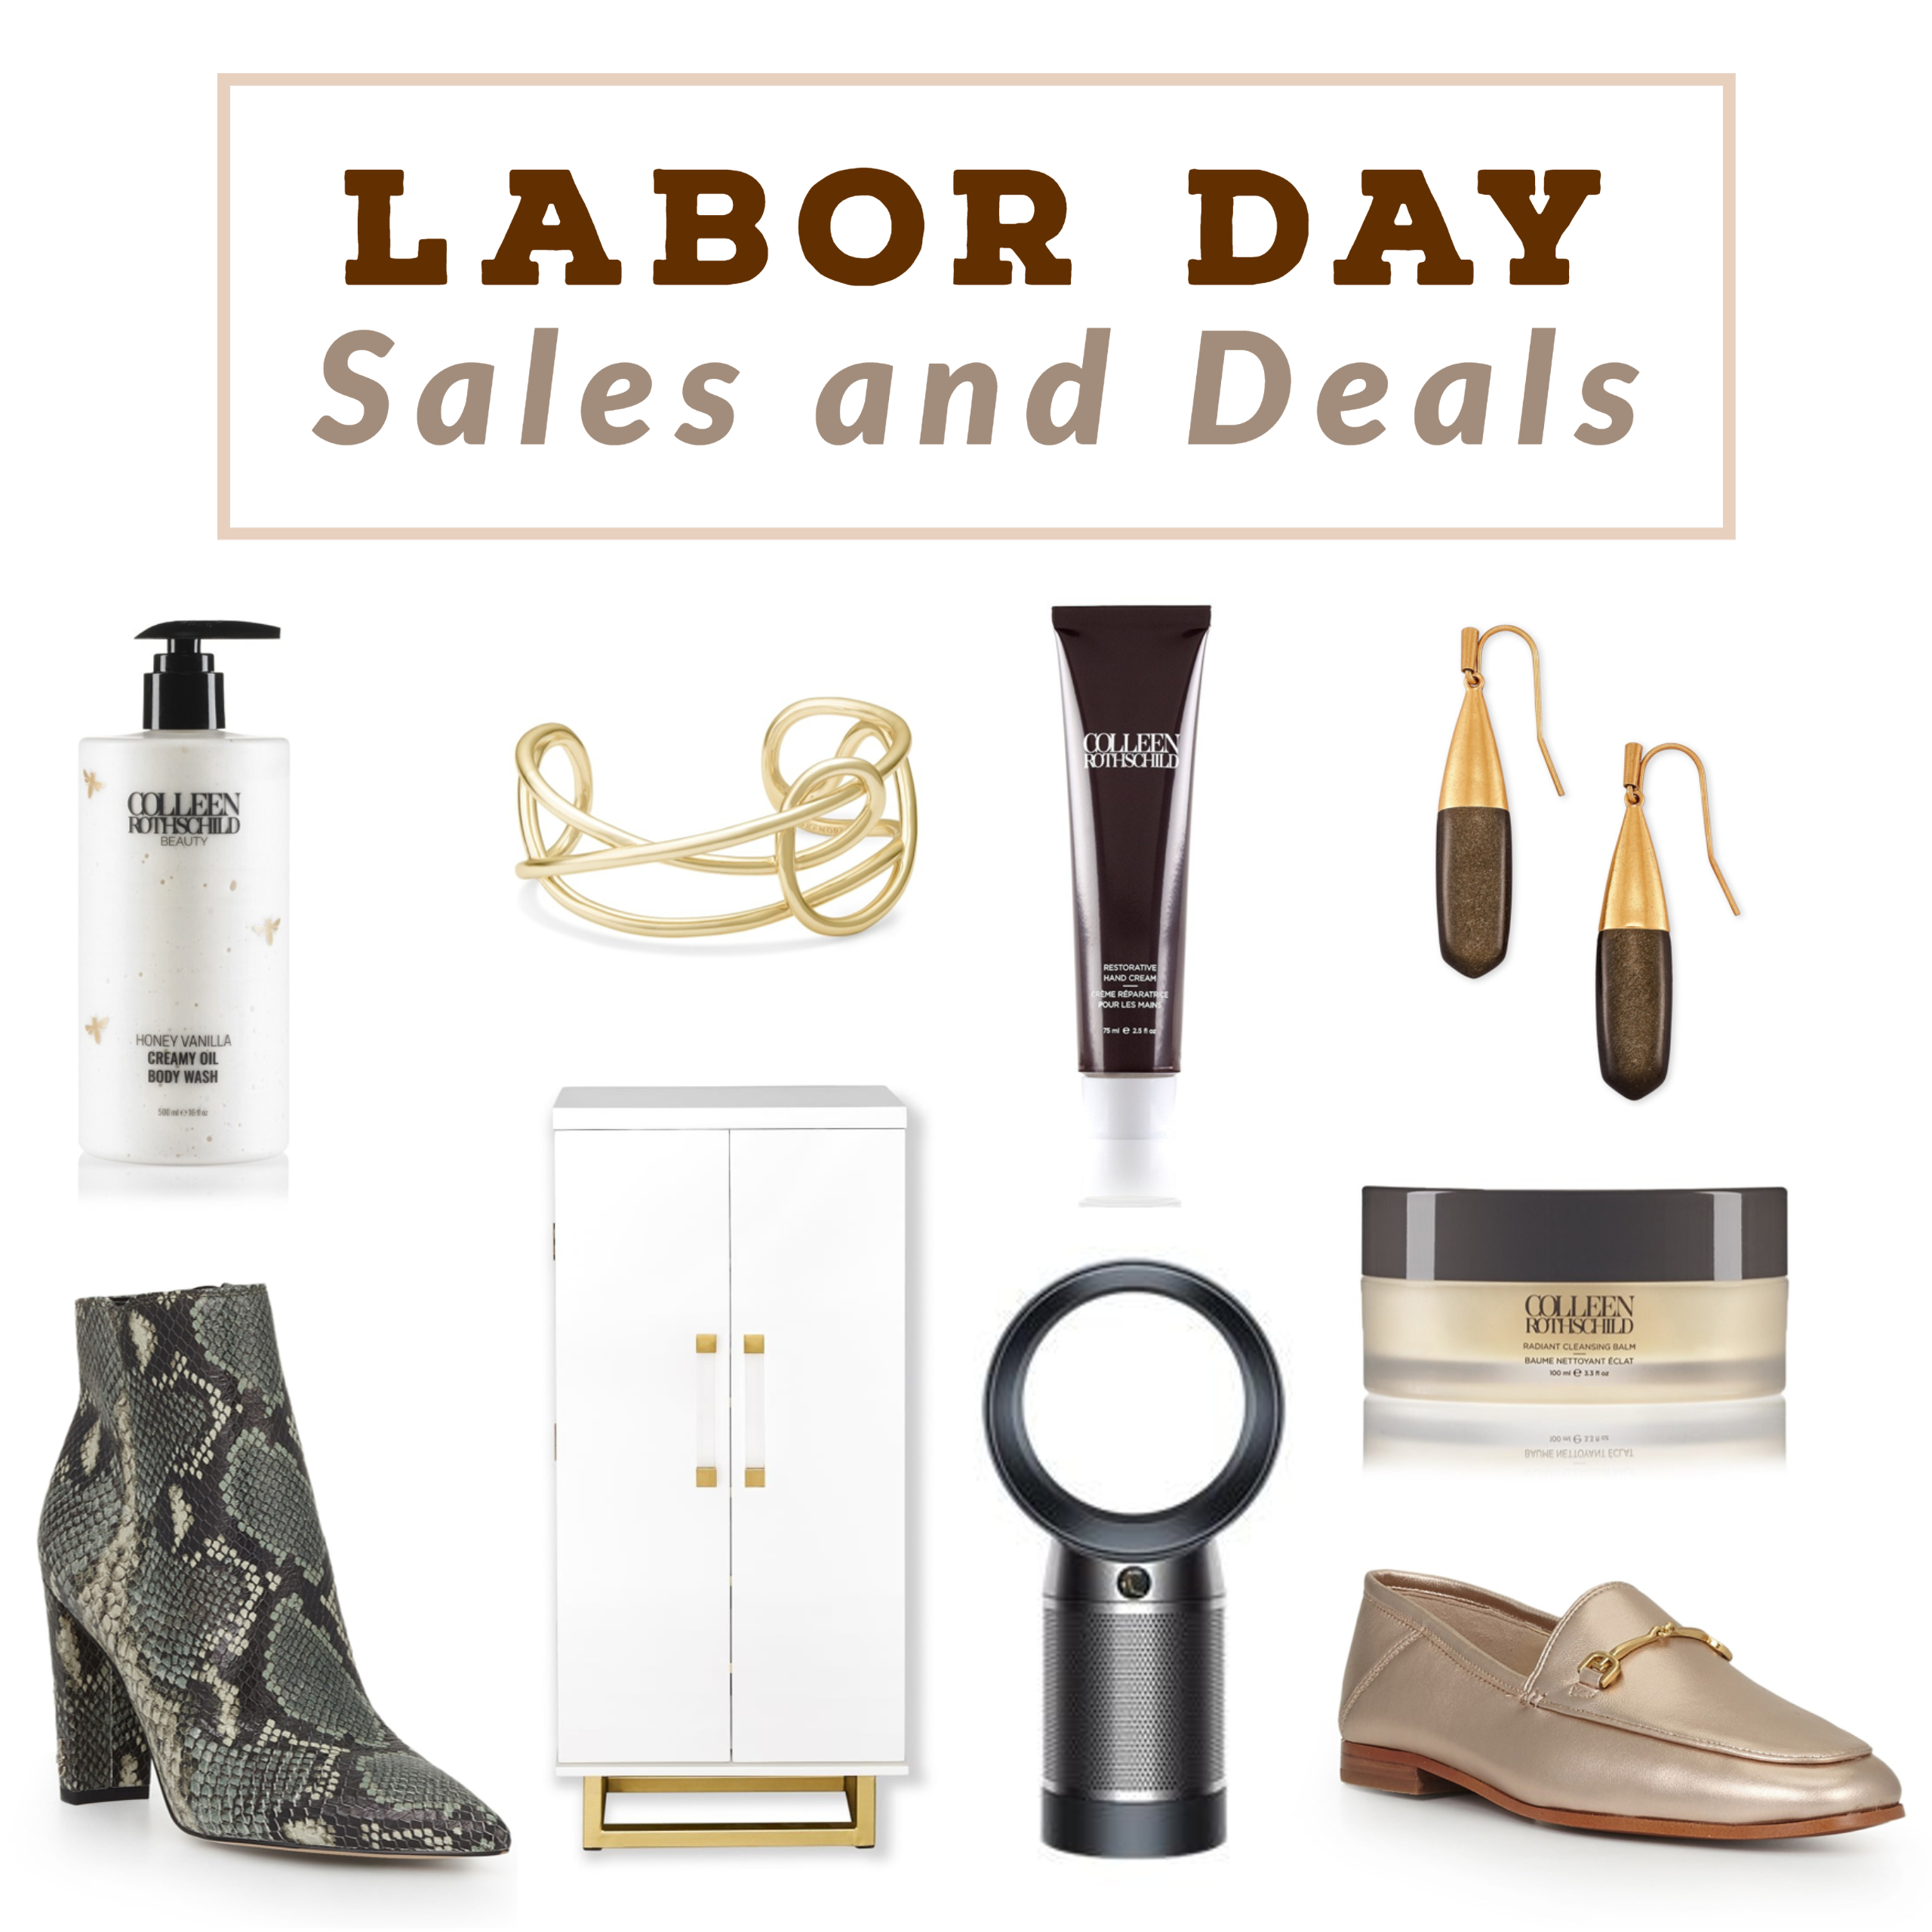 labor day 2020 sales and deals